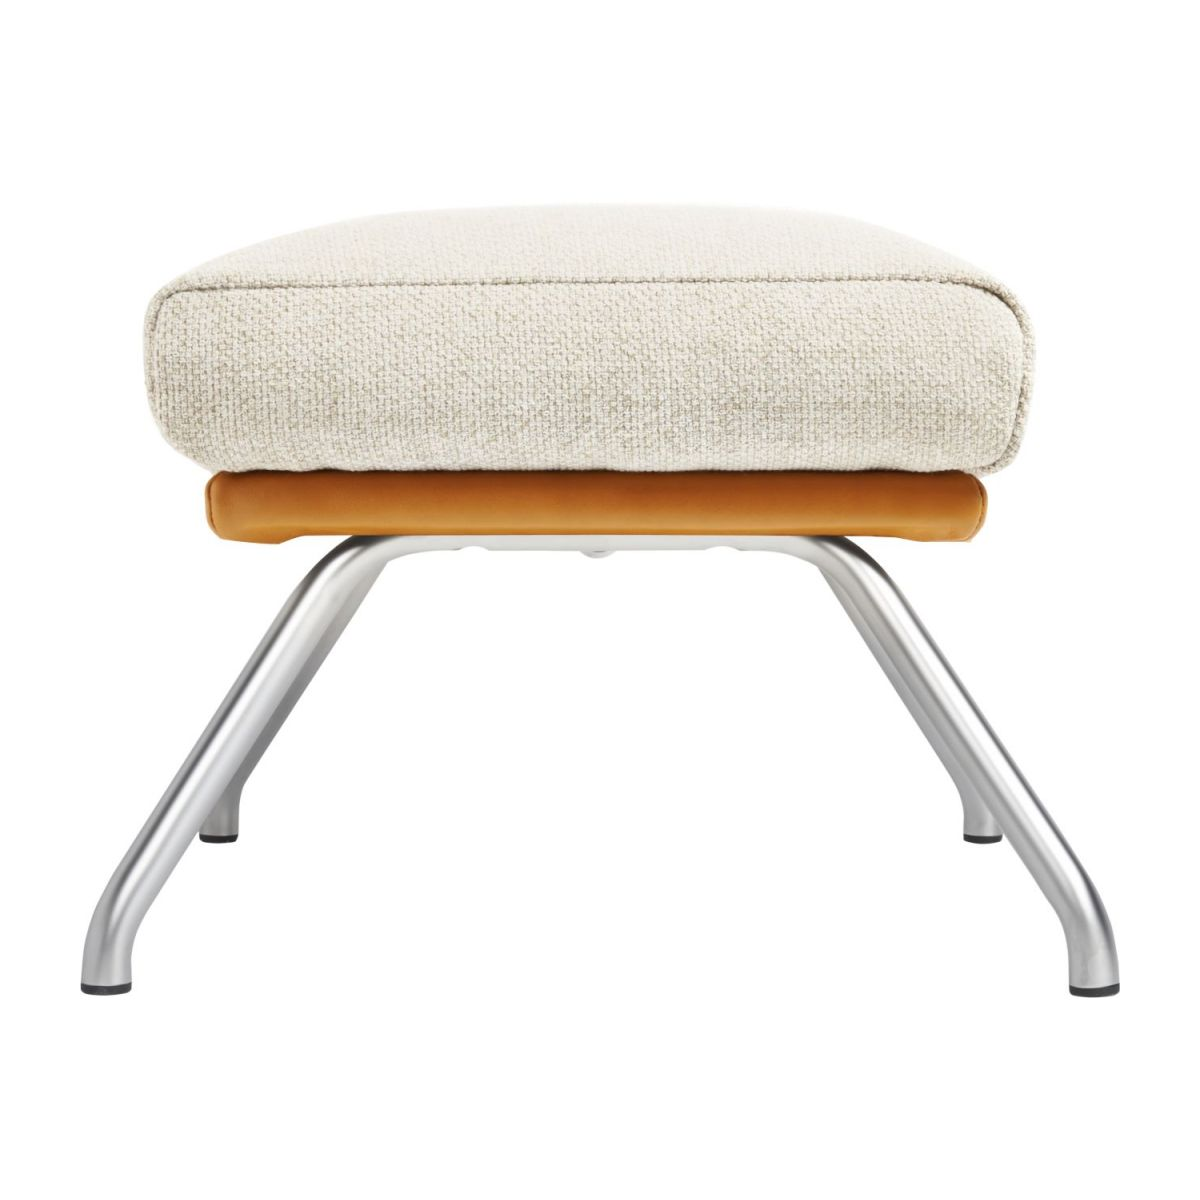 Footstool in Ancio fabric, nature et cuir marron with matt metal legs n°3